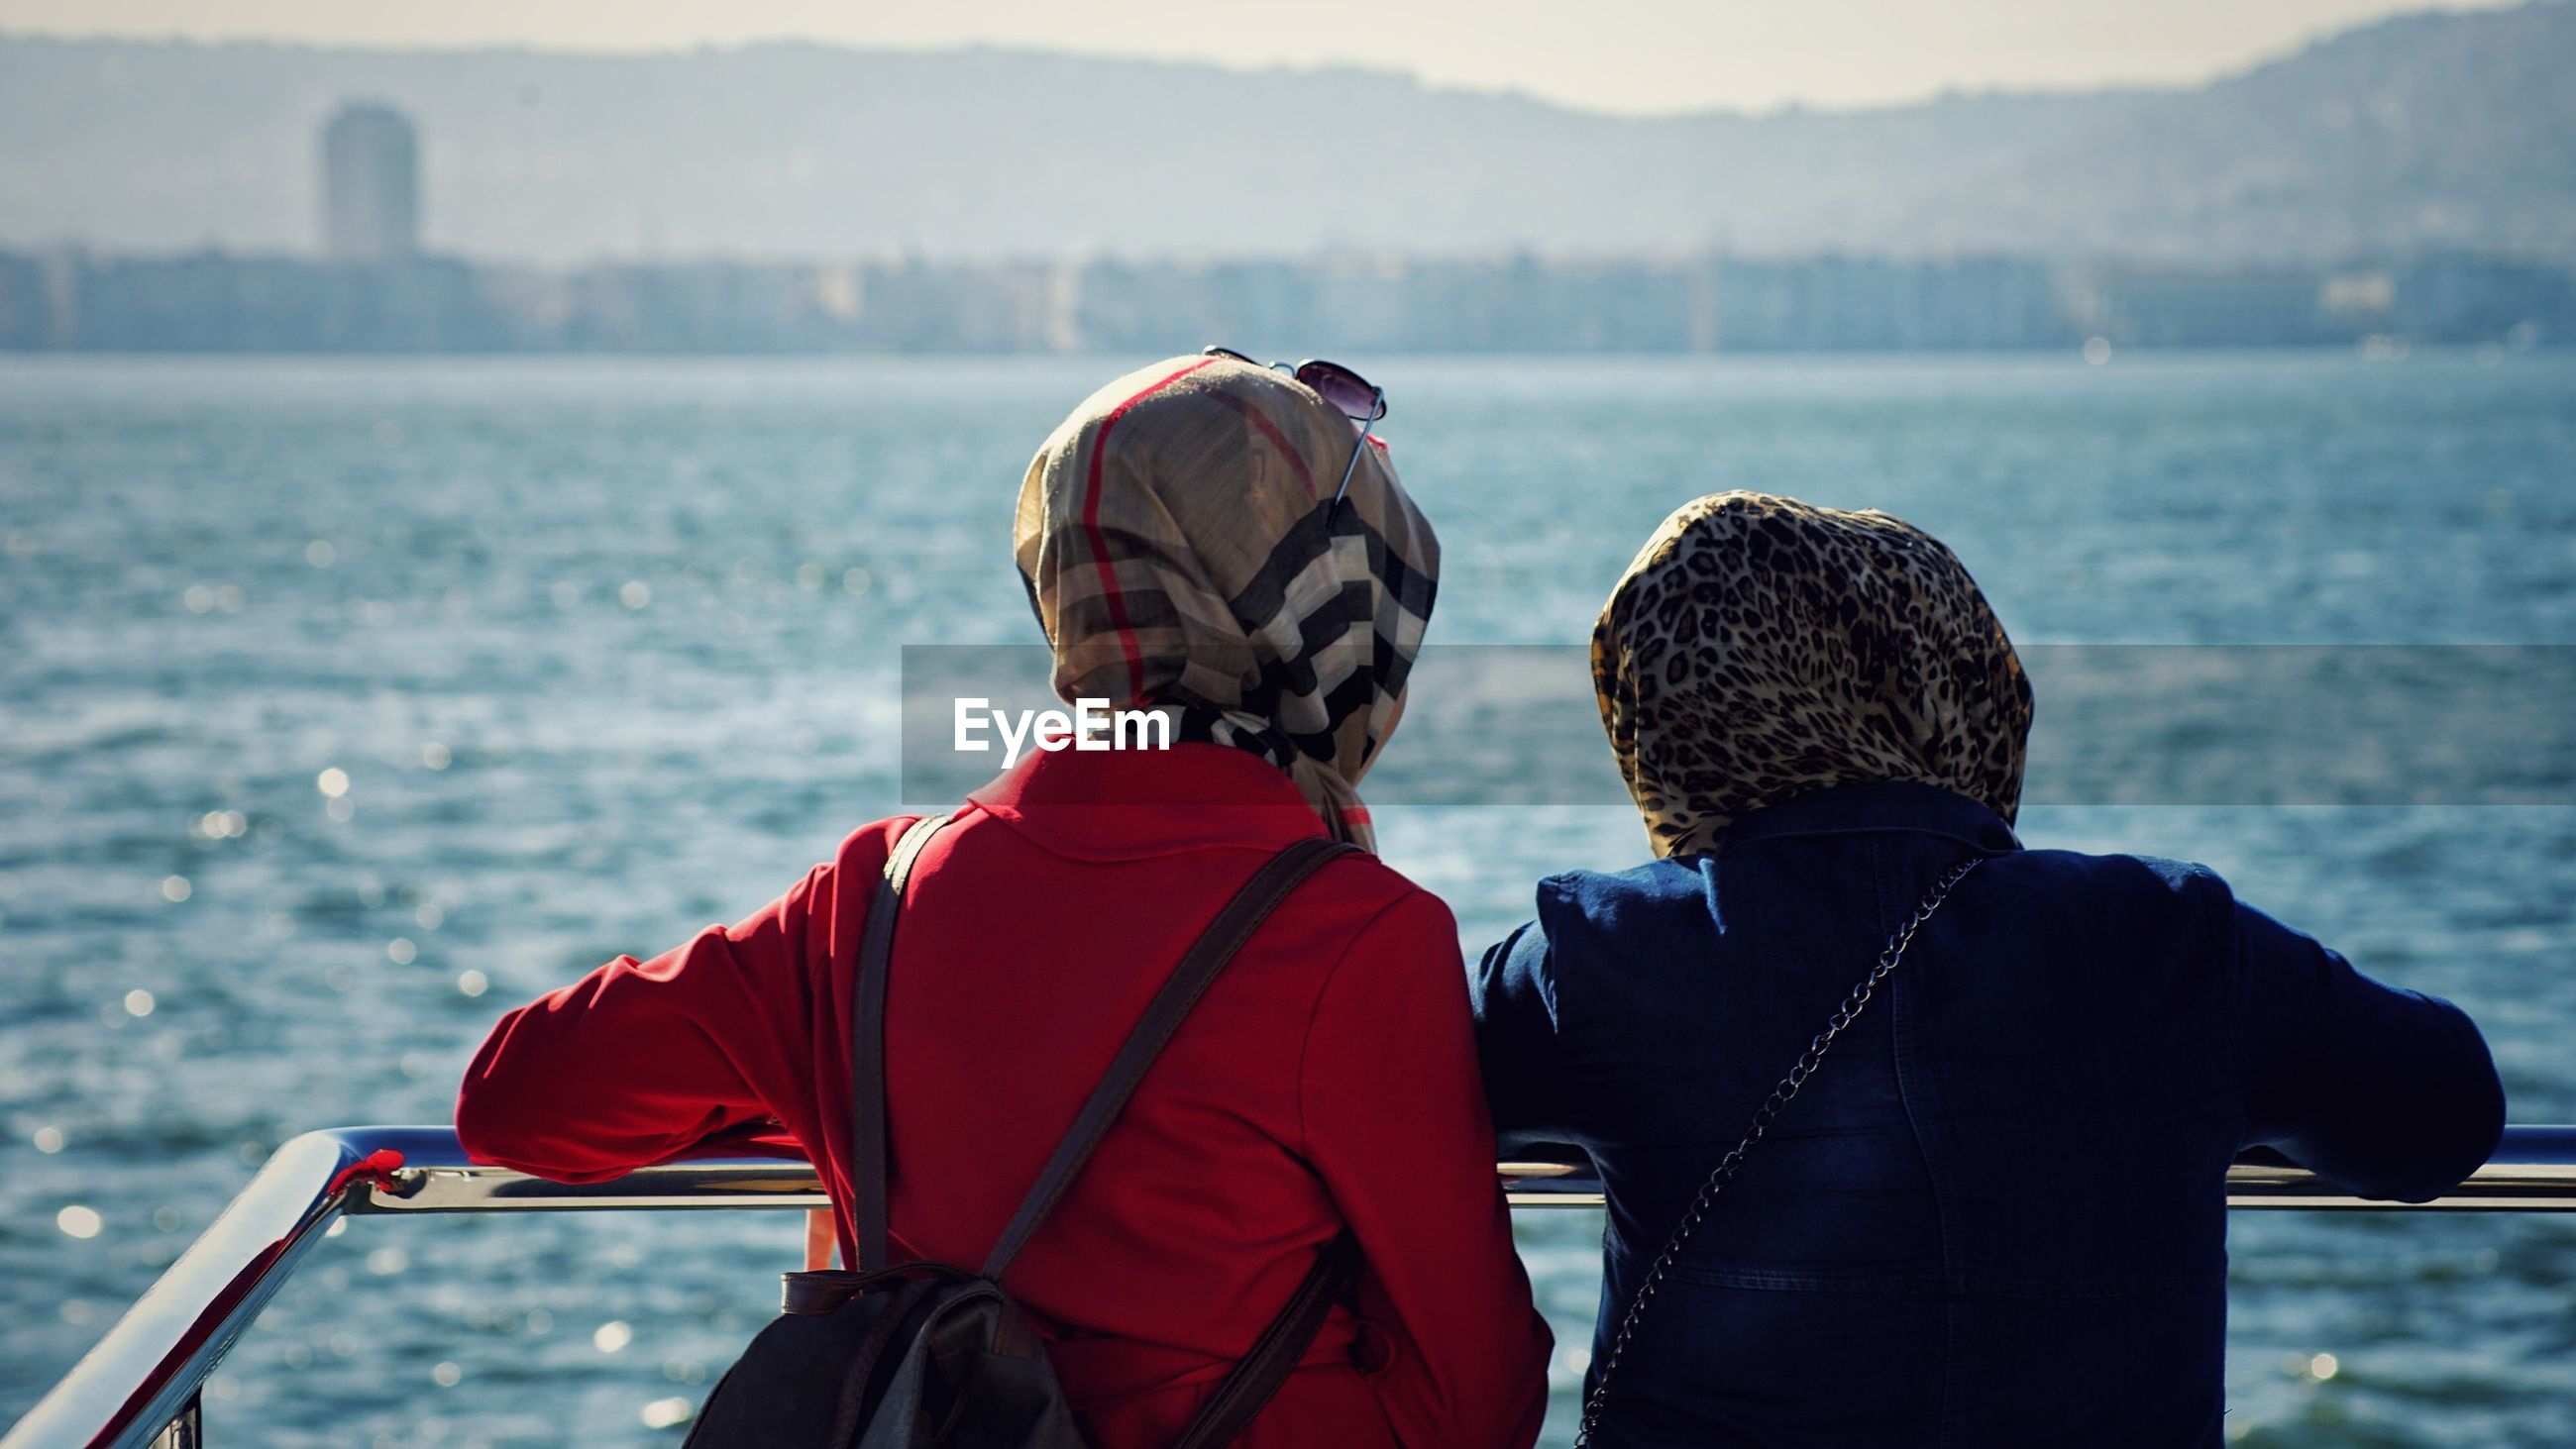 Rear view of women wearing headscarf looking at sea